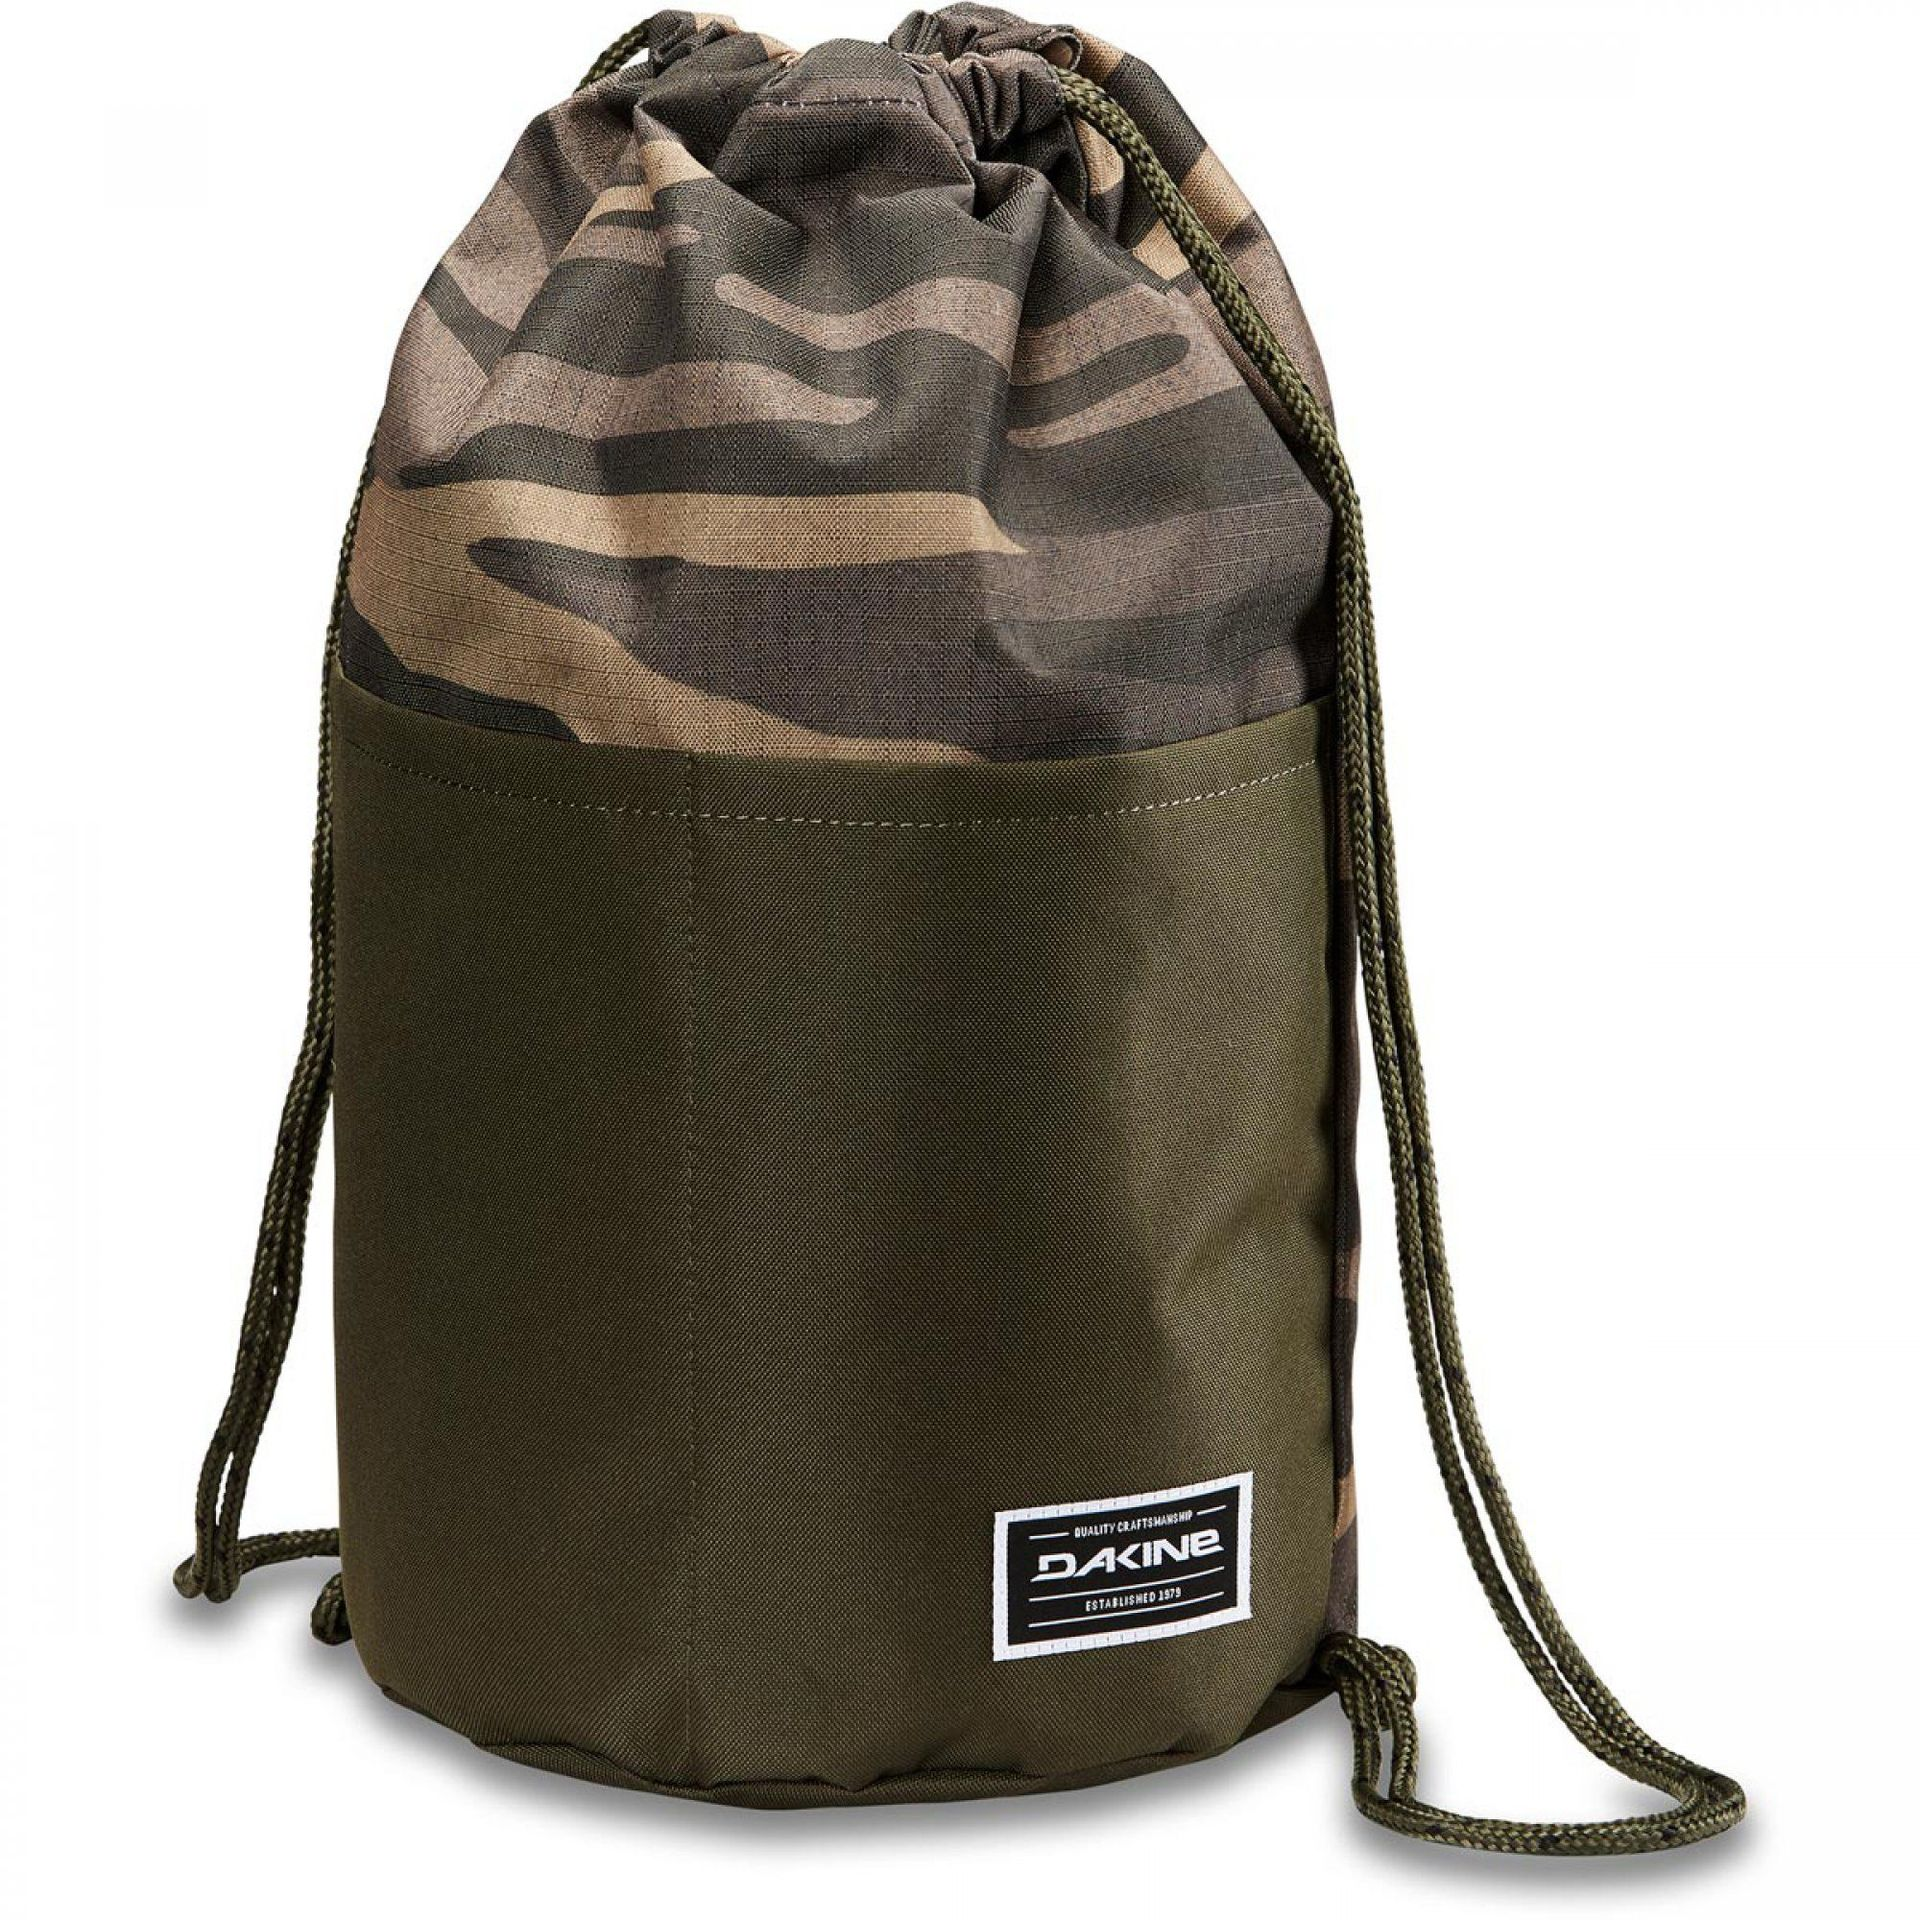 PLECAK DAKINE CINCH PACK 17L FIELD CAMO